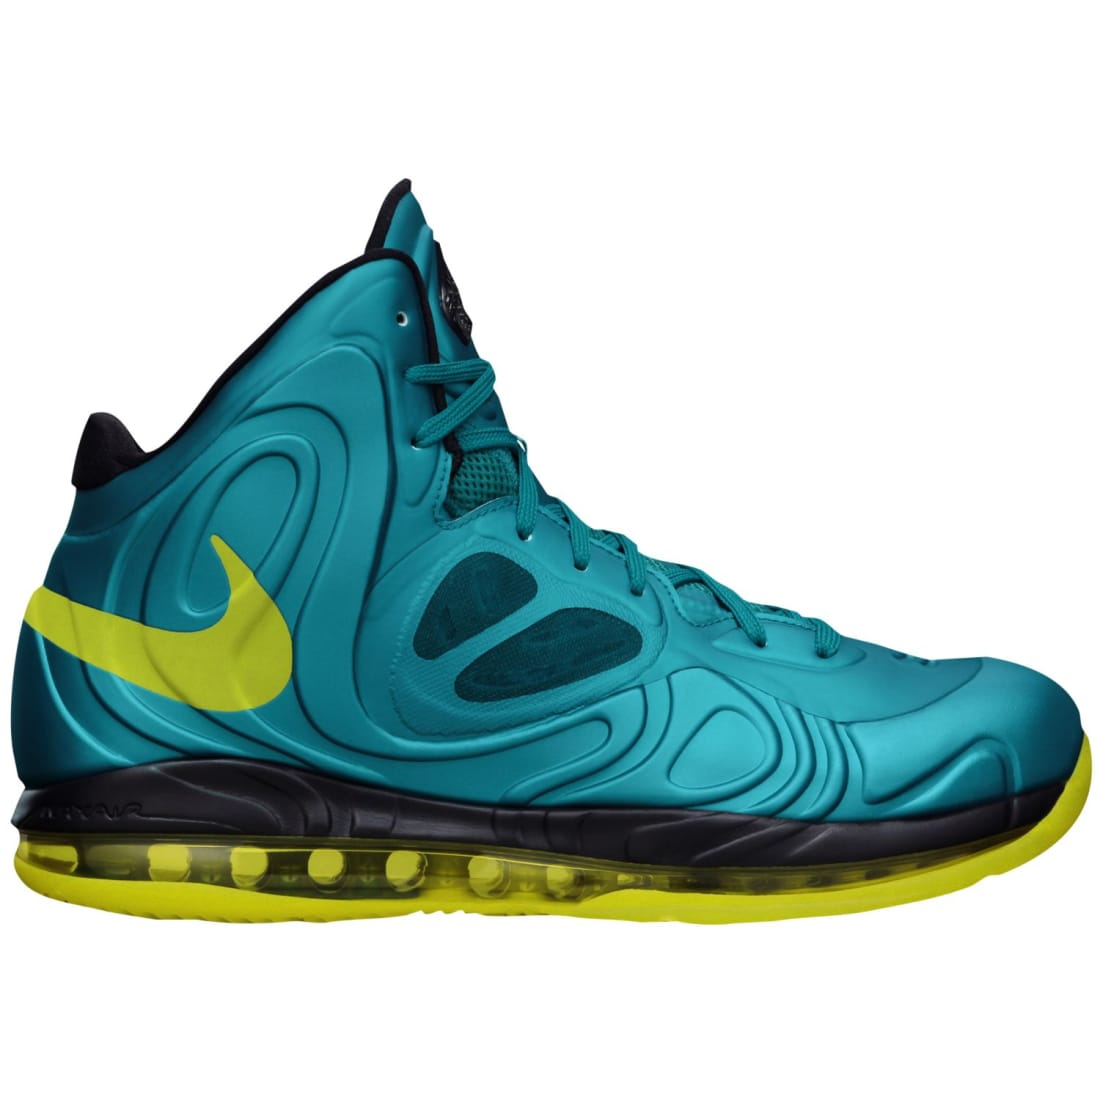 99d1926dac7 Nike · Nike Basketball. Nike Air Max Hyperposite